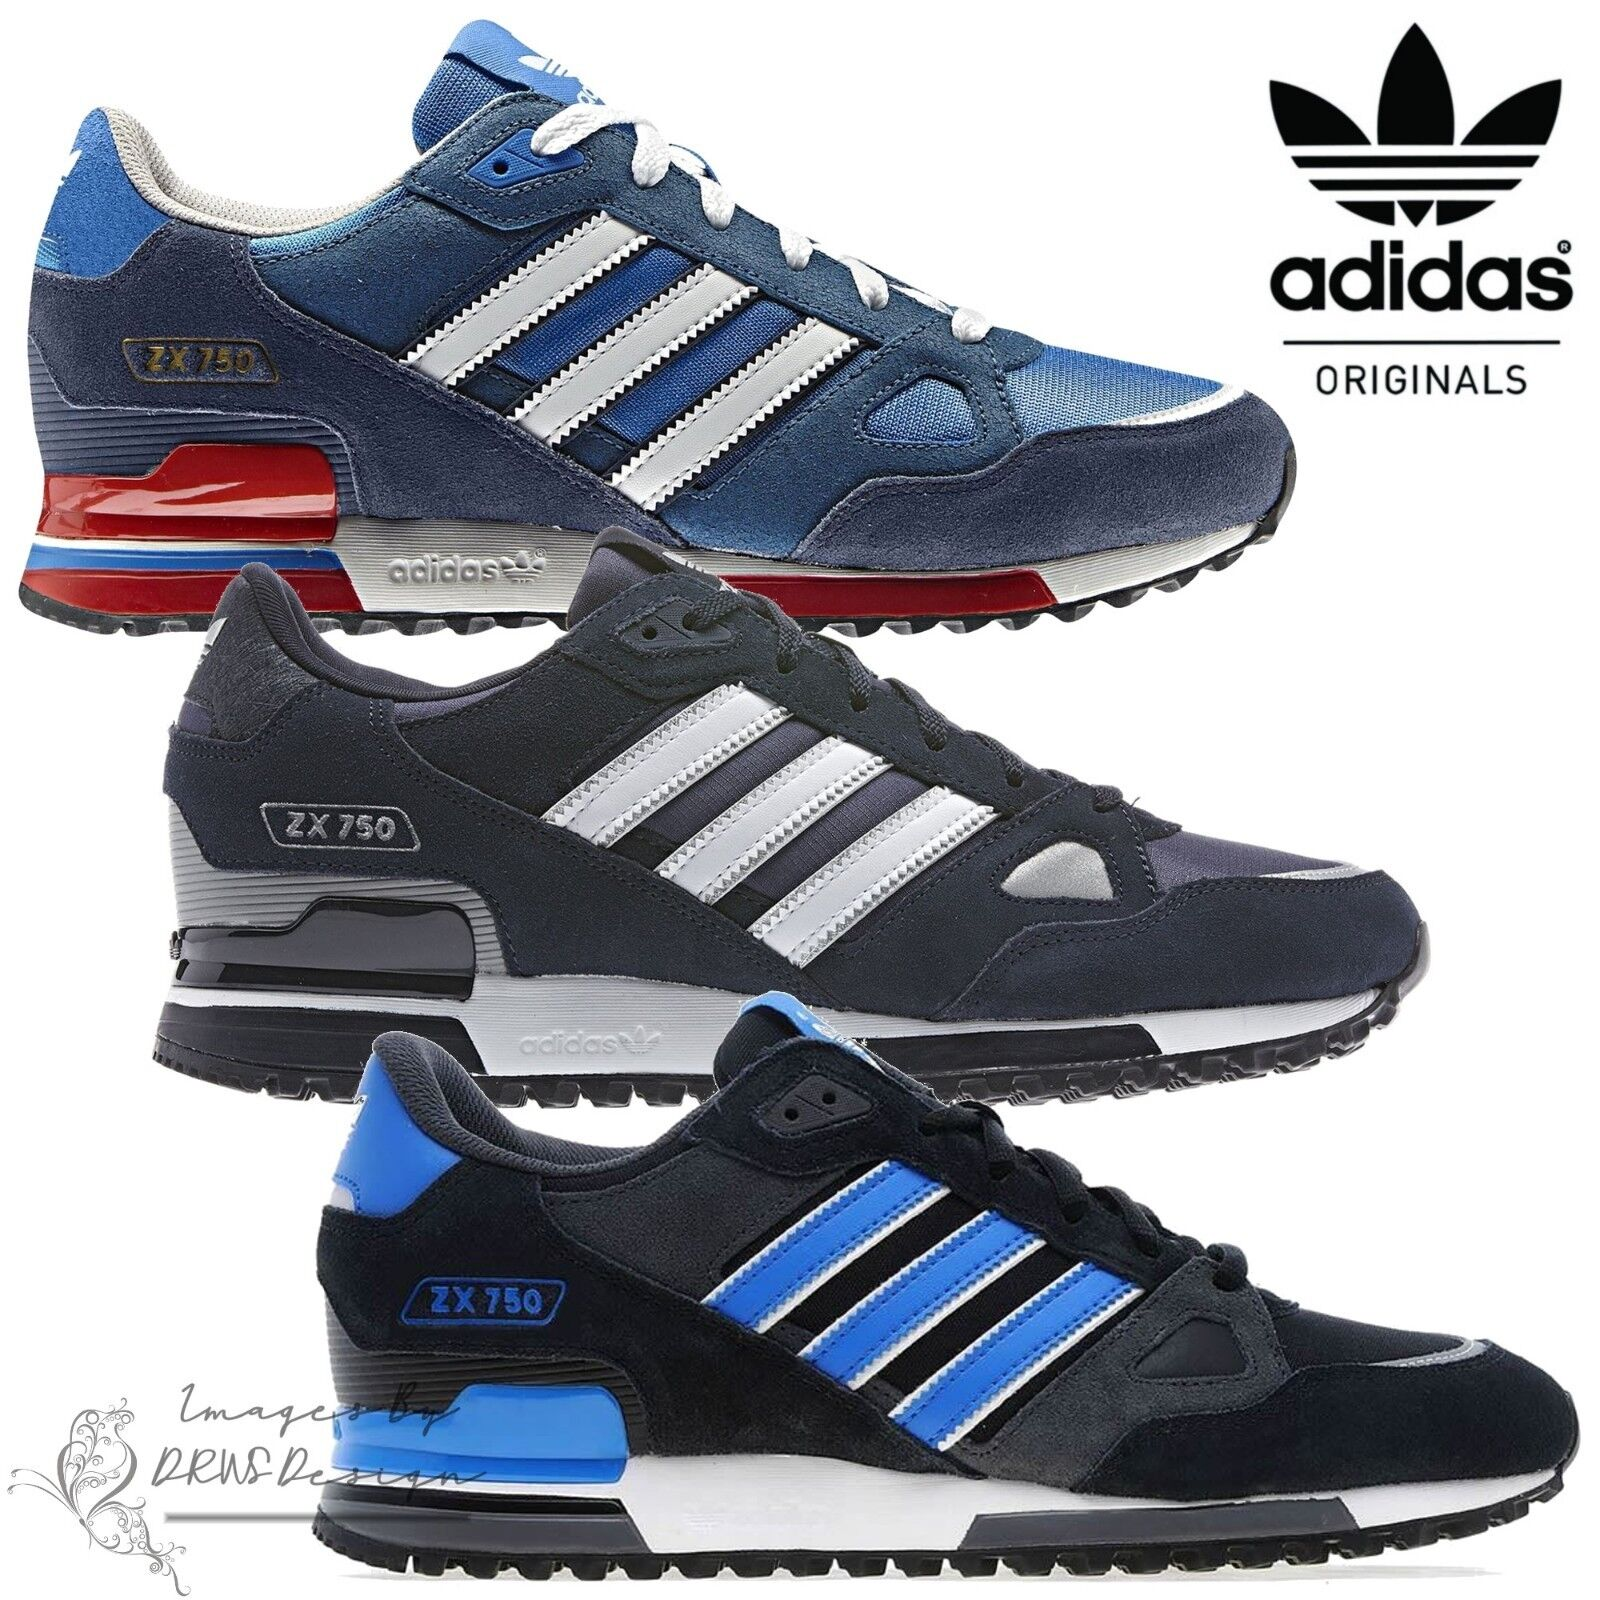 lowest price a2c48 c2e62 ✅ 24Hr Delivery✅Adidas Originals ZX750 Men's Suede Trainers Sports Running  Shoes